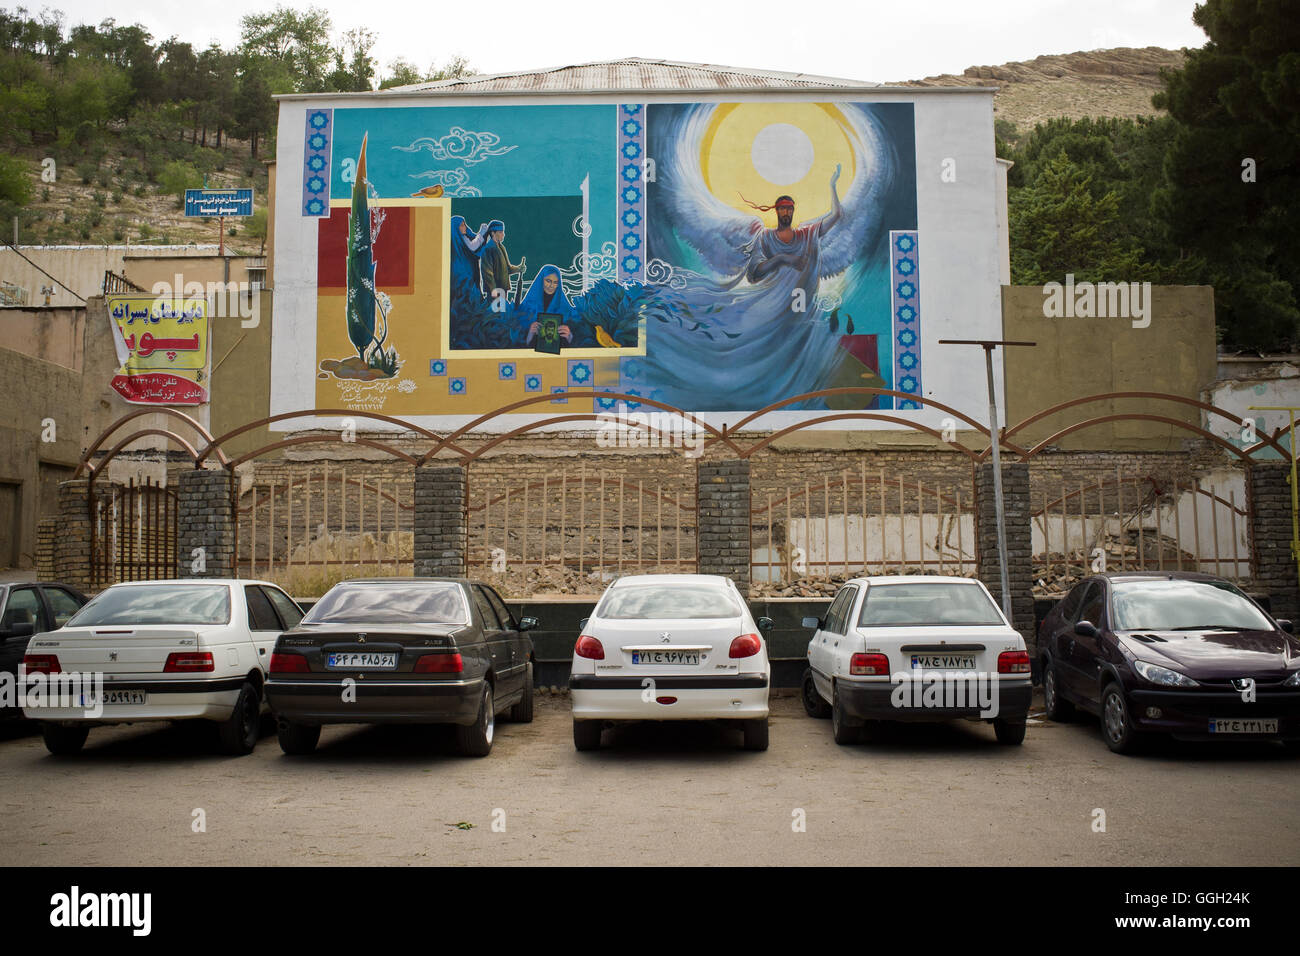 Cars parked in front of a mural of the martyrs of the Iranian revolution in Khorramabad, Iran. © Jordi Boixareu - Stock Image